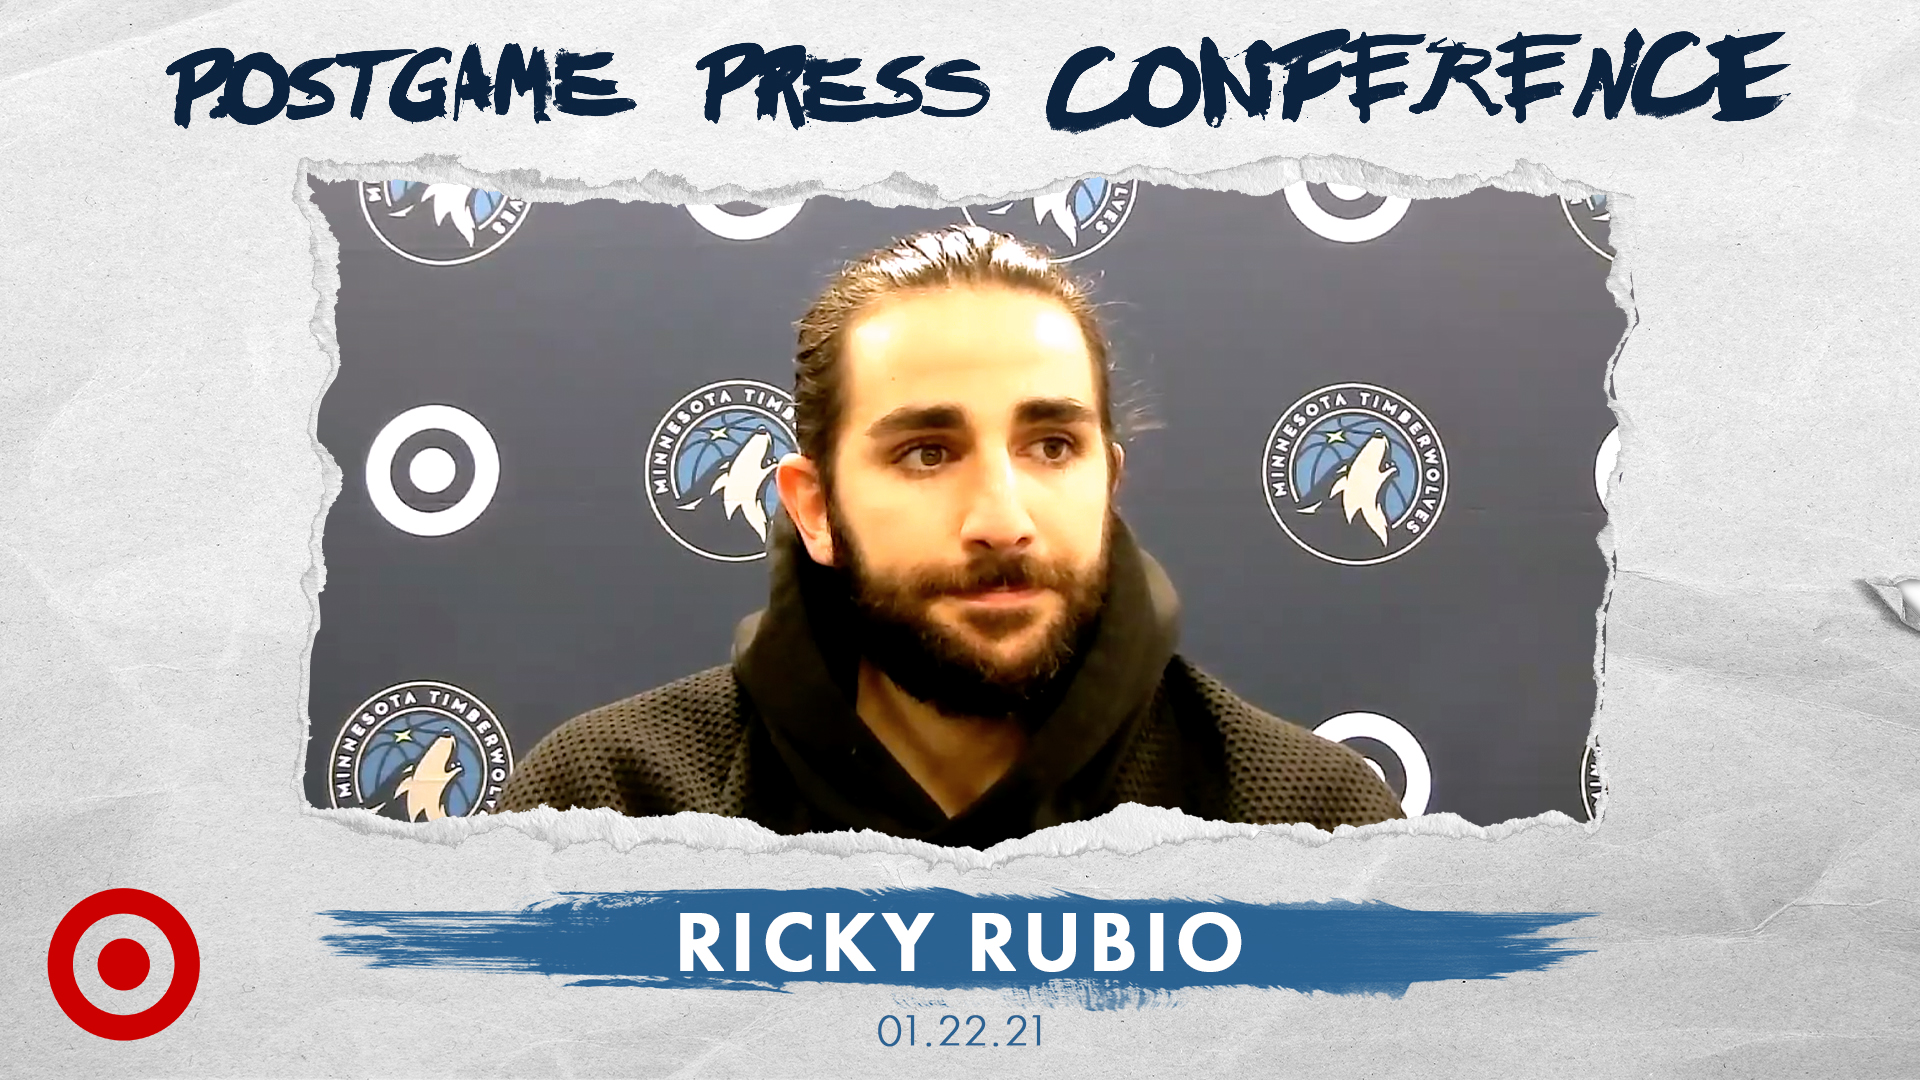 Ricky Rubio Postgame Press Conference - January 22, 2021